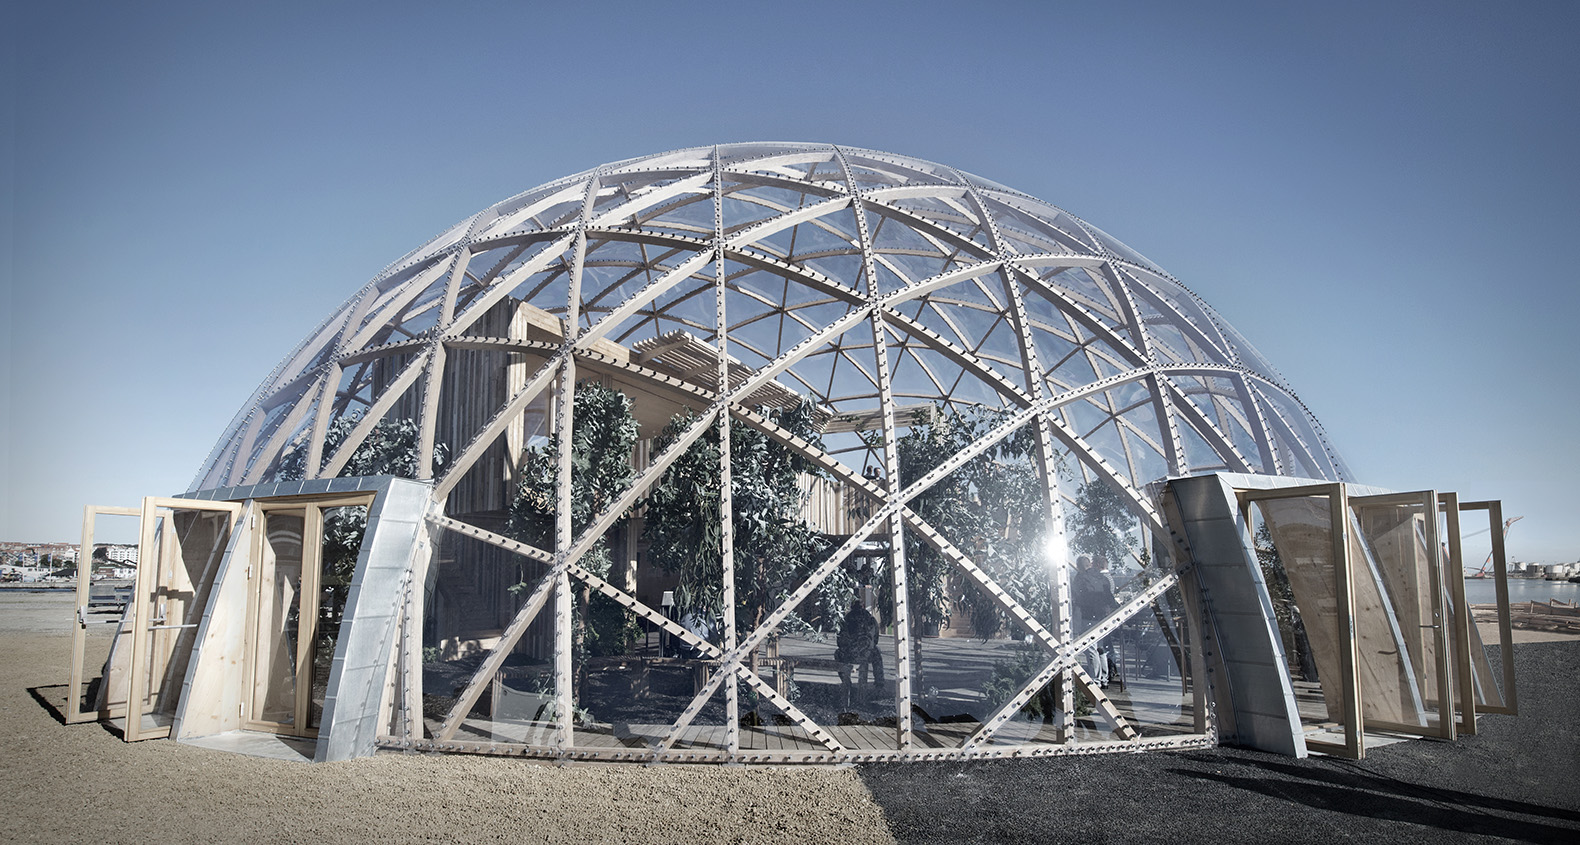 Spectacular 39 Dome Of Visions 39 Greenhouse Pushes The